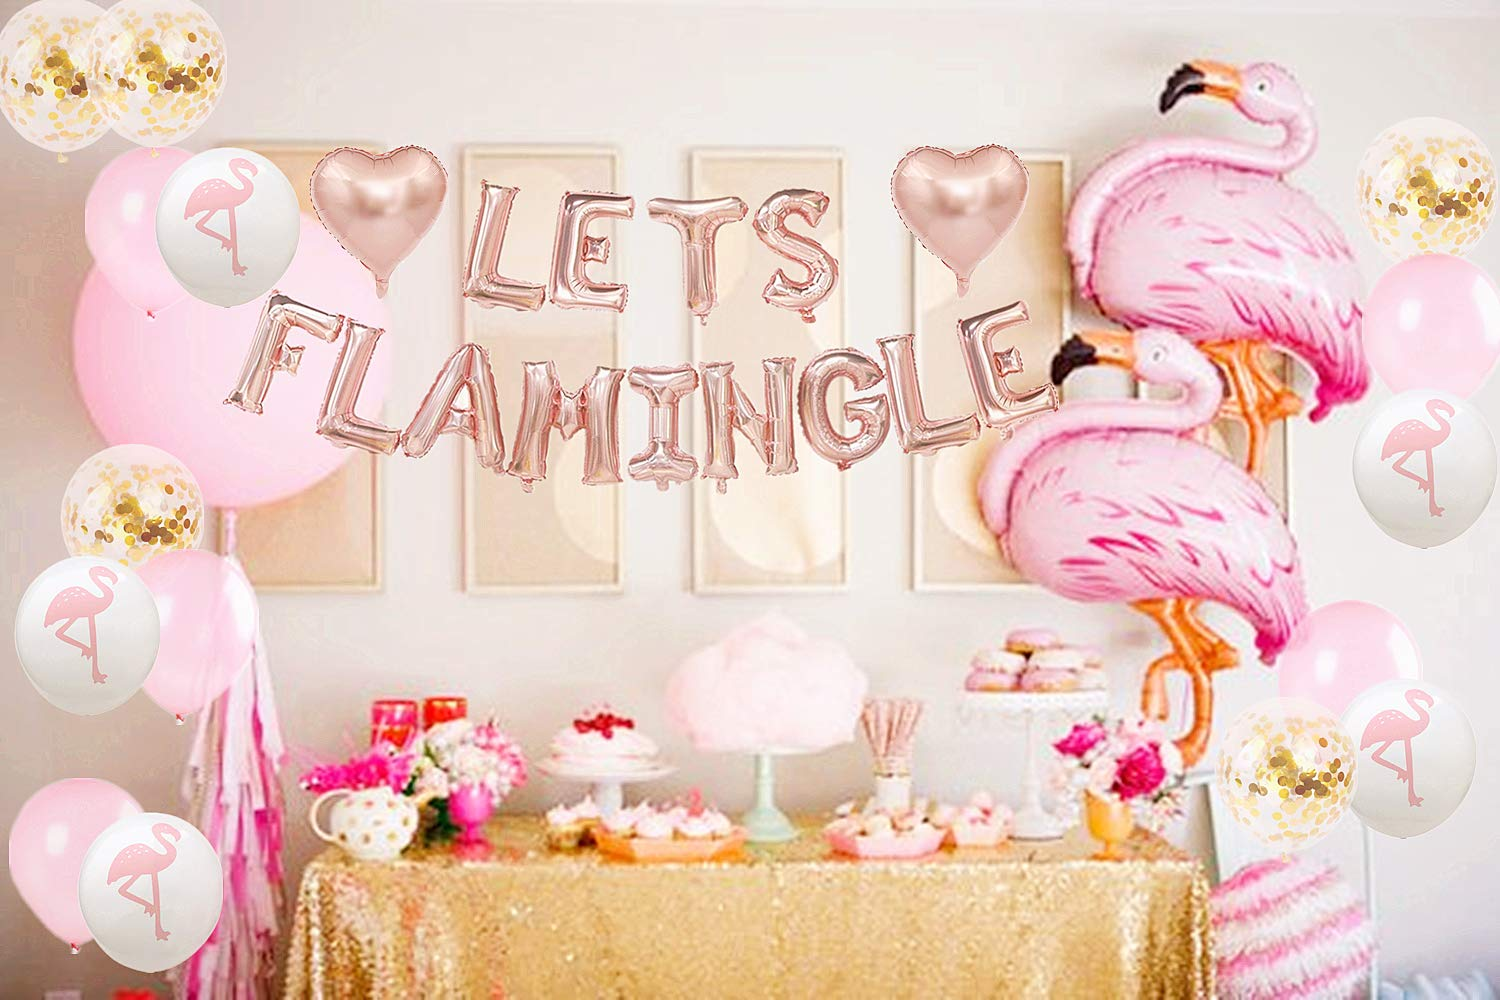 party supplies happy birthday girl wedding  party balloons decorations Flamingo stickers